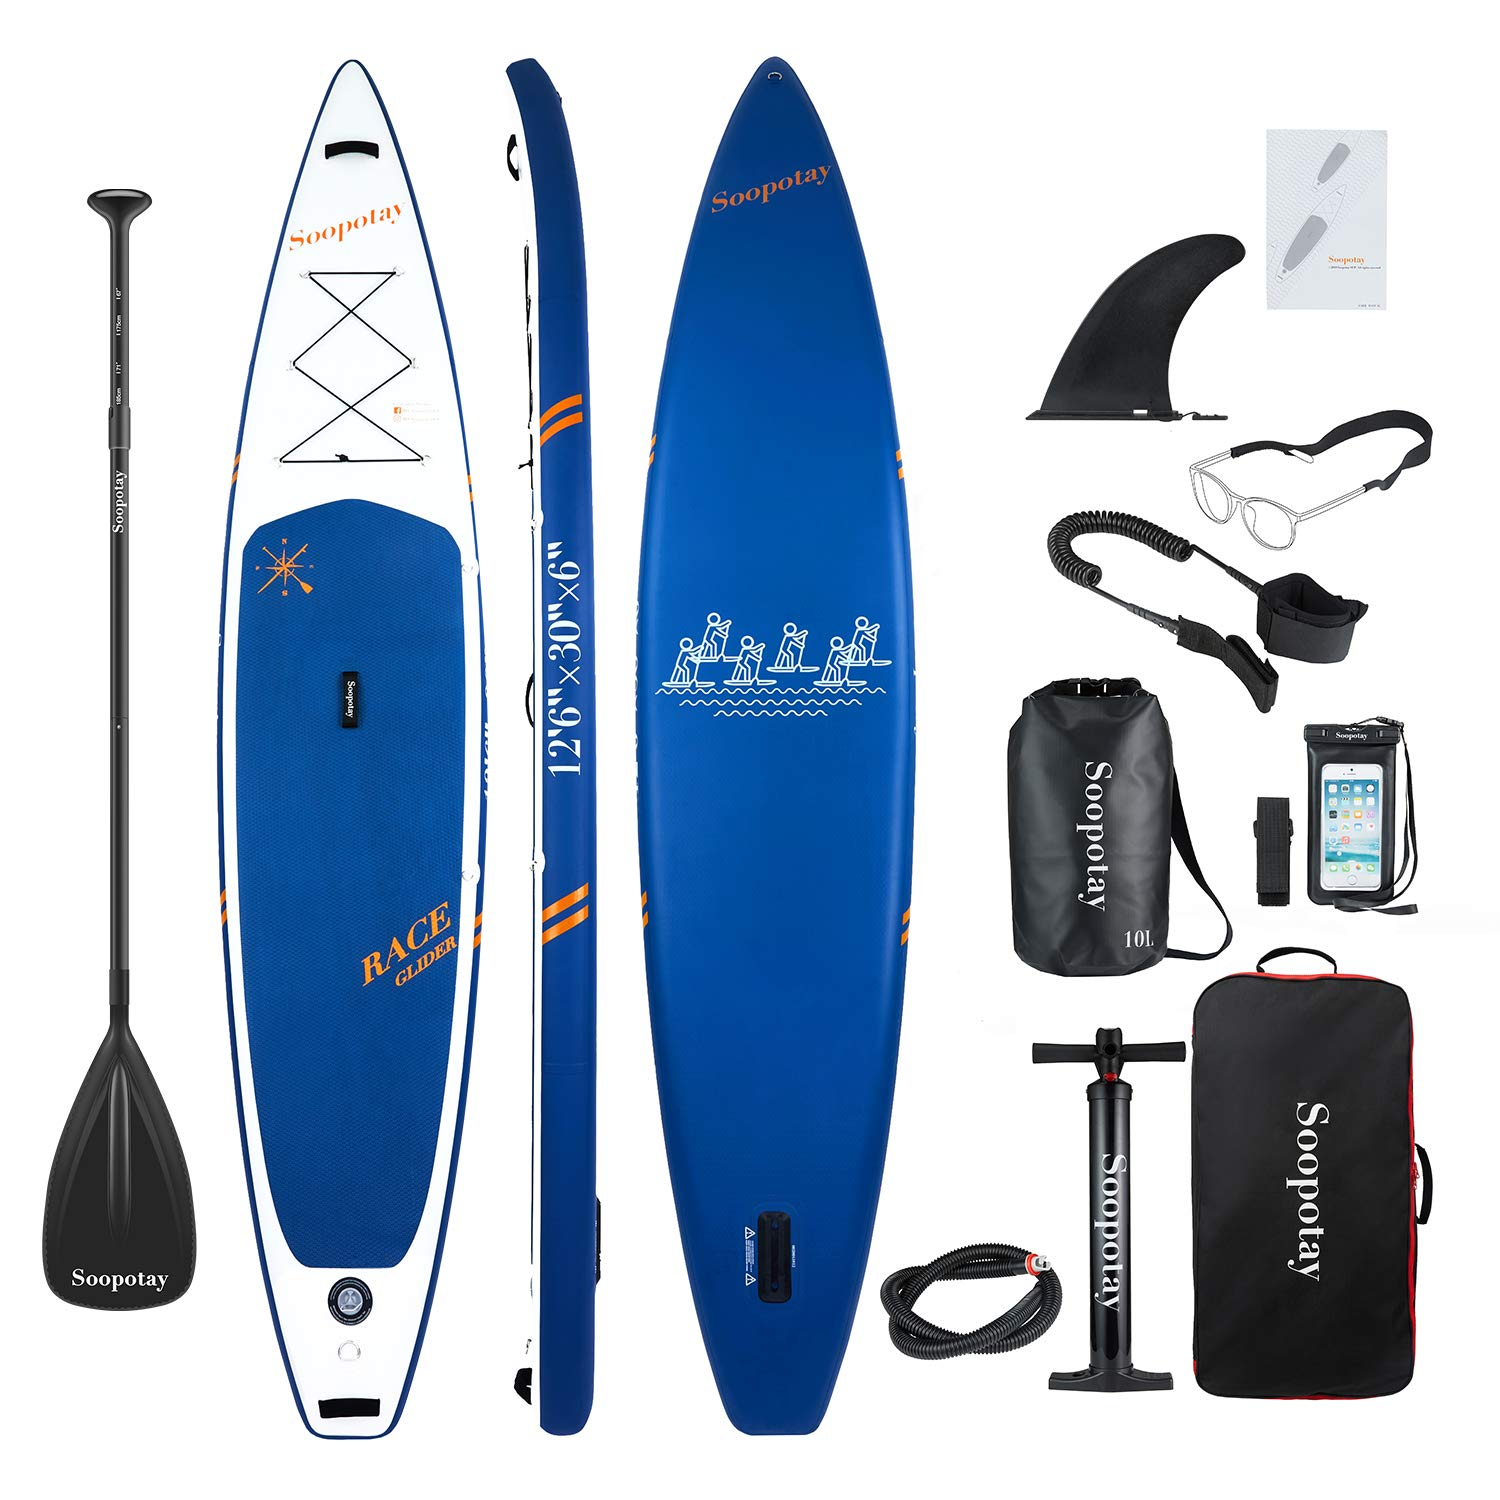 Inflatable SUP Stand Up Paddle Board, Inflatable SUP Board, iSUP Package with All Accessories (Racing-Navy Blue-12'6'' x 30'' x 6'') by Soopotay (Image #1)